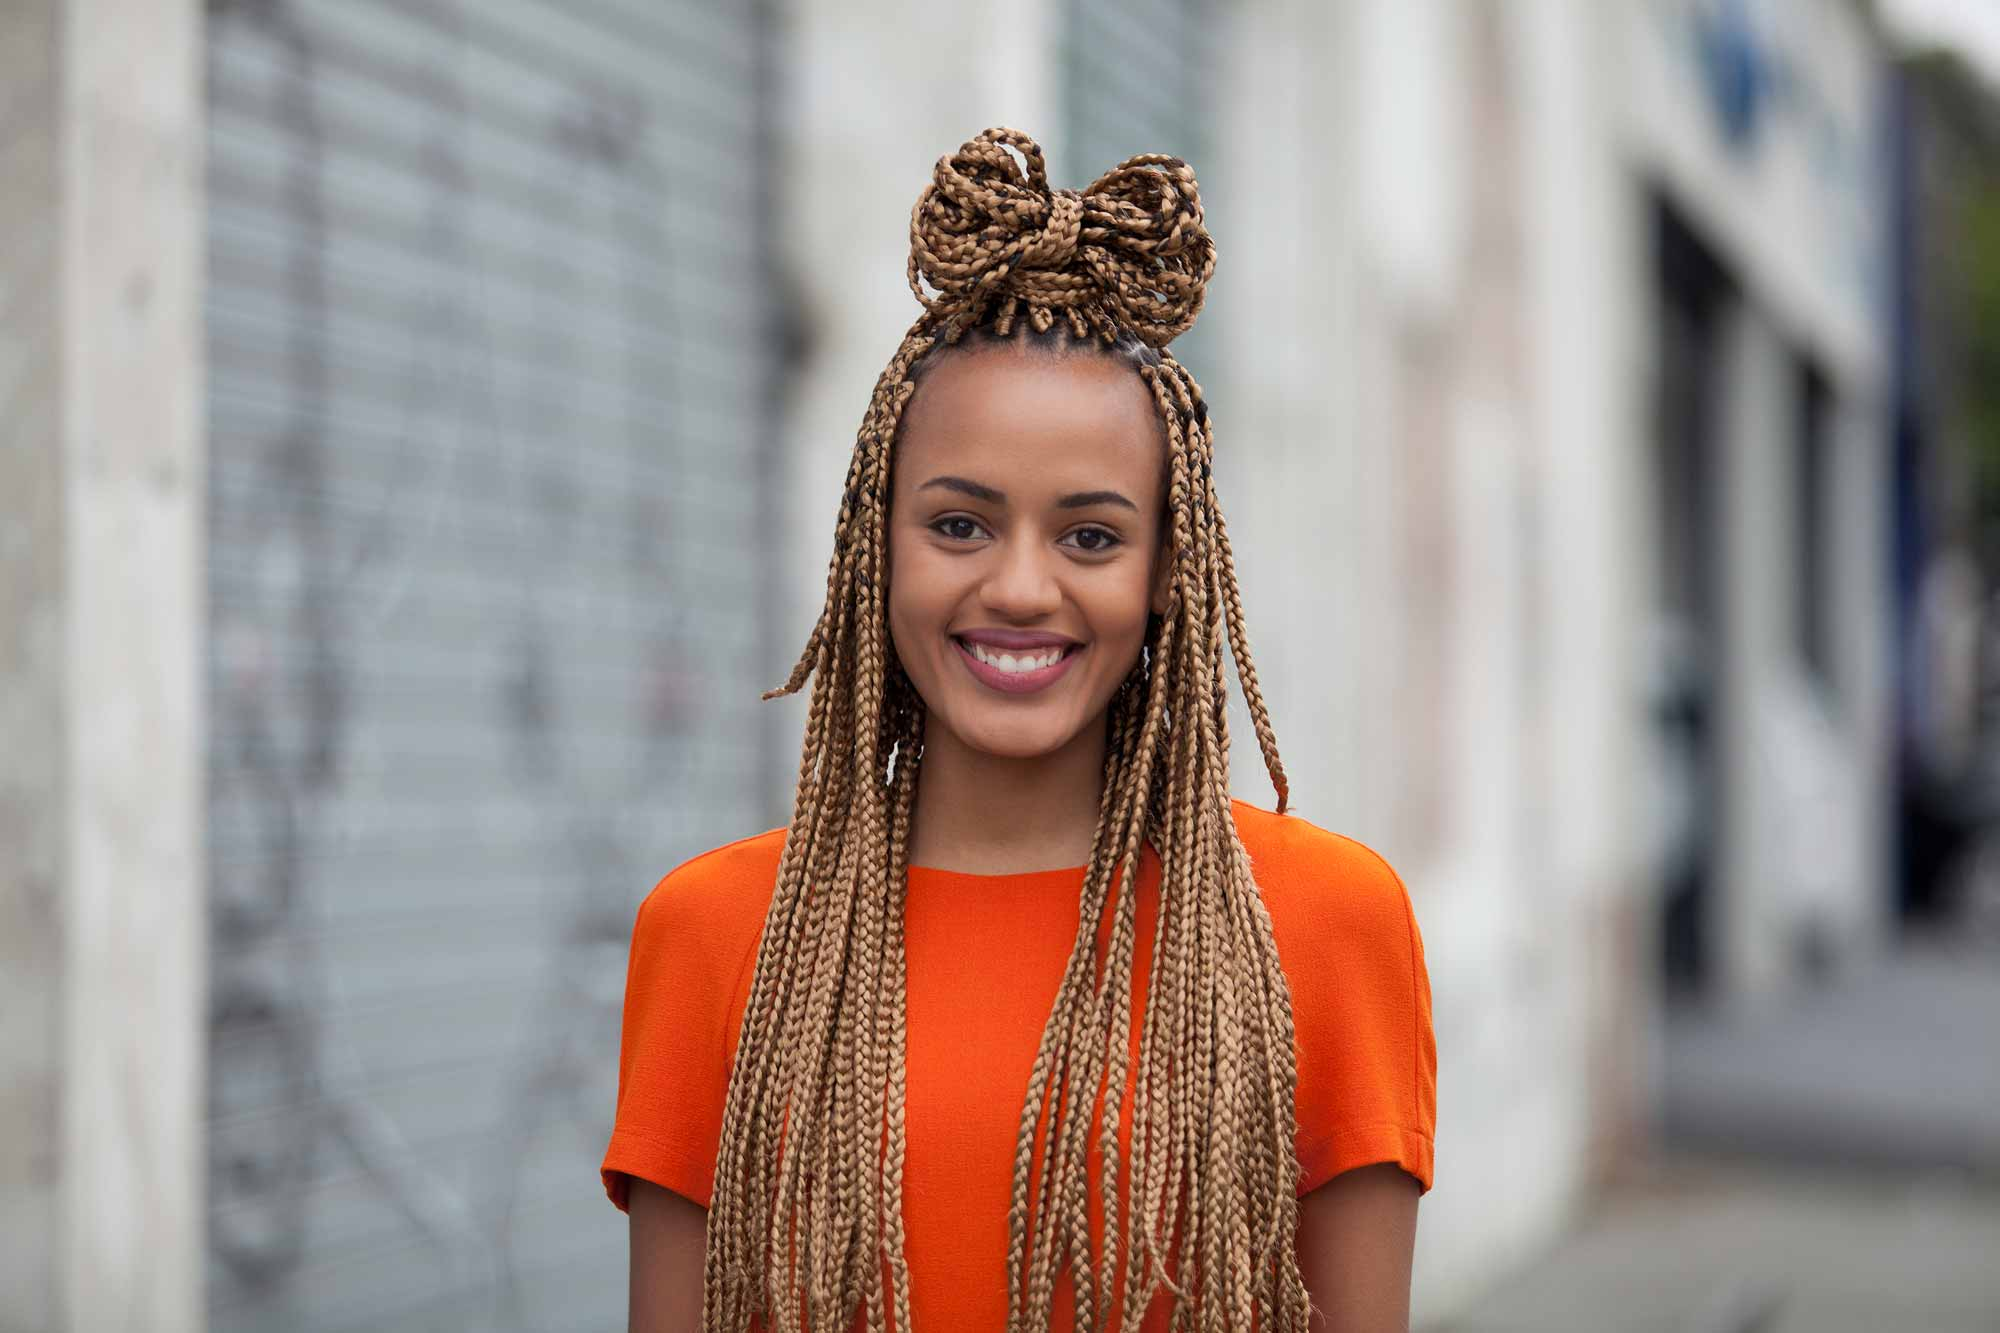 Long box braids hairstyles: Smiling model with long golden box braids in a half-up bow hairstyle, wearing an orange top